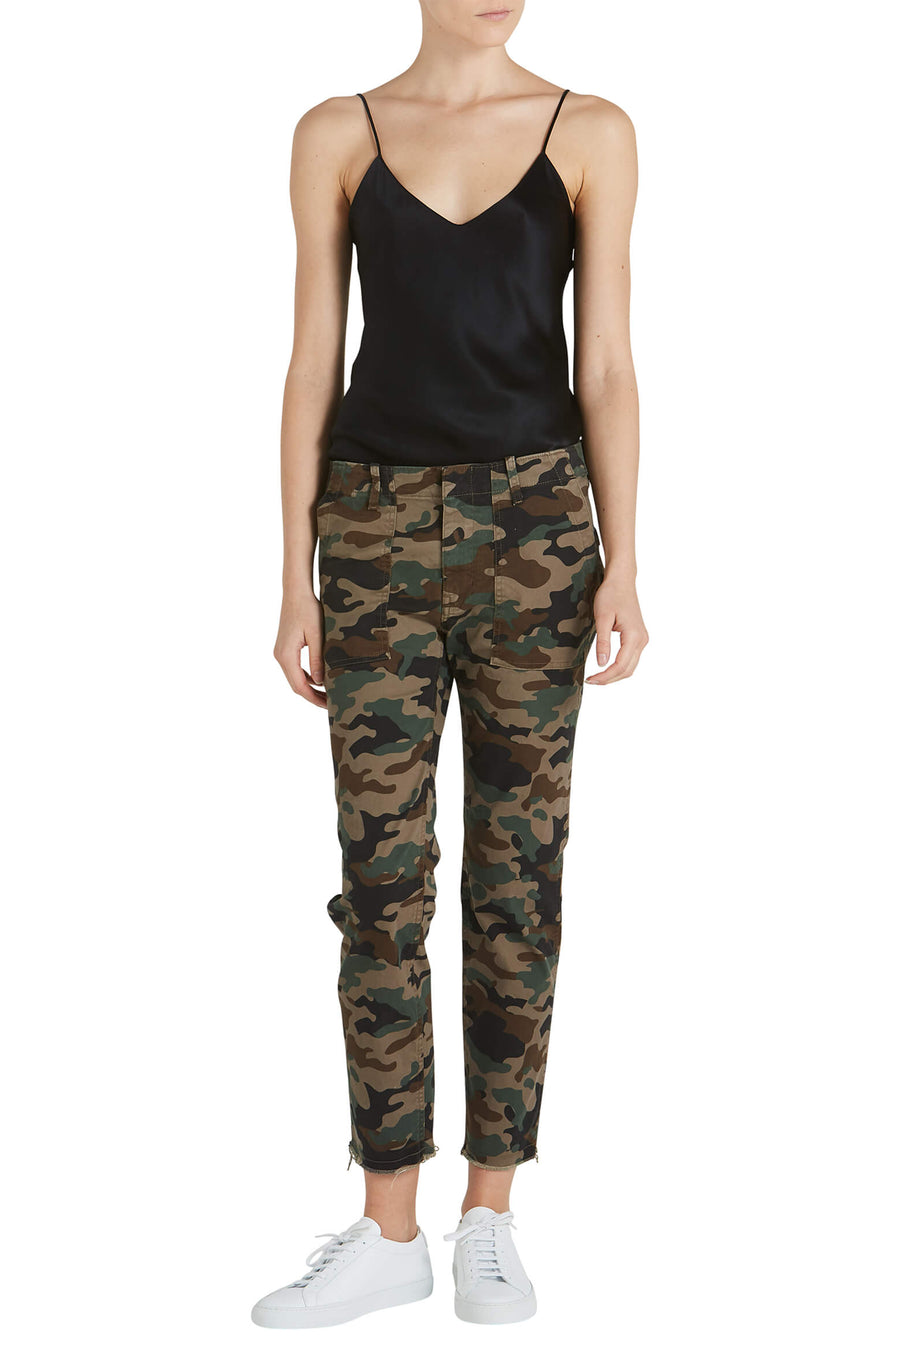 Nili Lotan Jenna Pant in Brown Camouflage from The New Trend